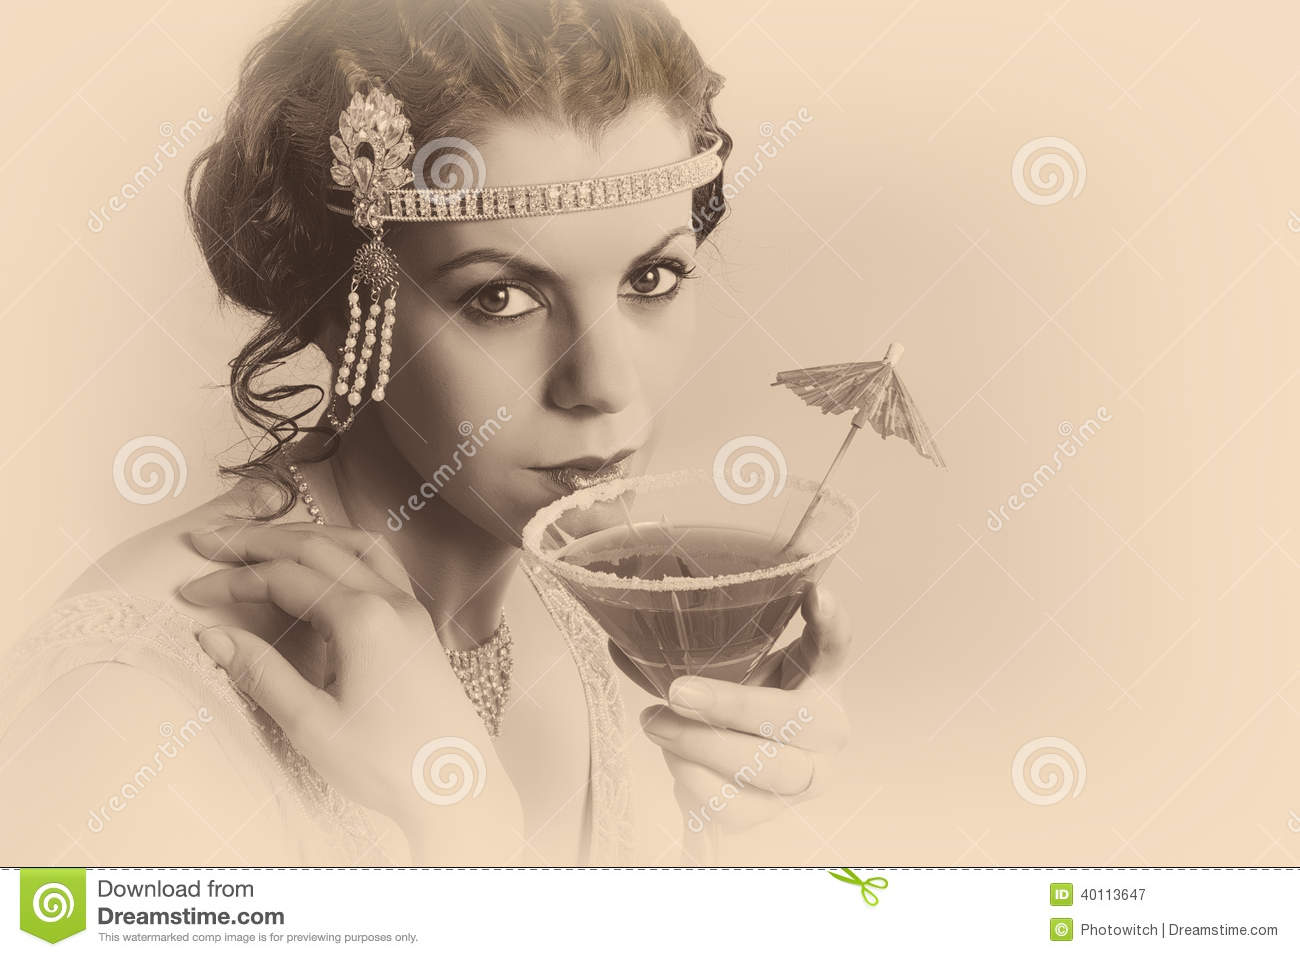 ... 1920s woman with headband and flapper dress drinking a cocktail